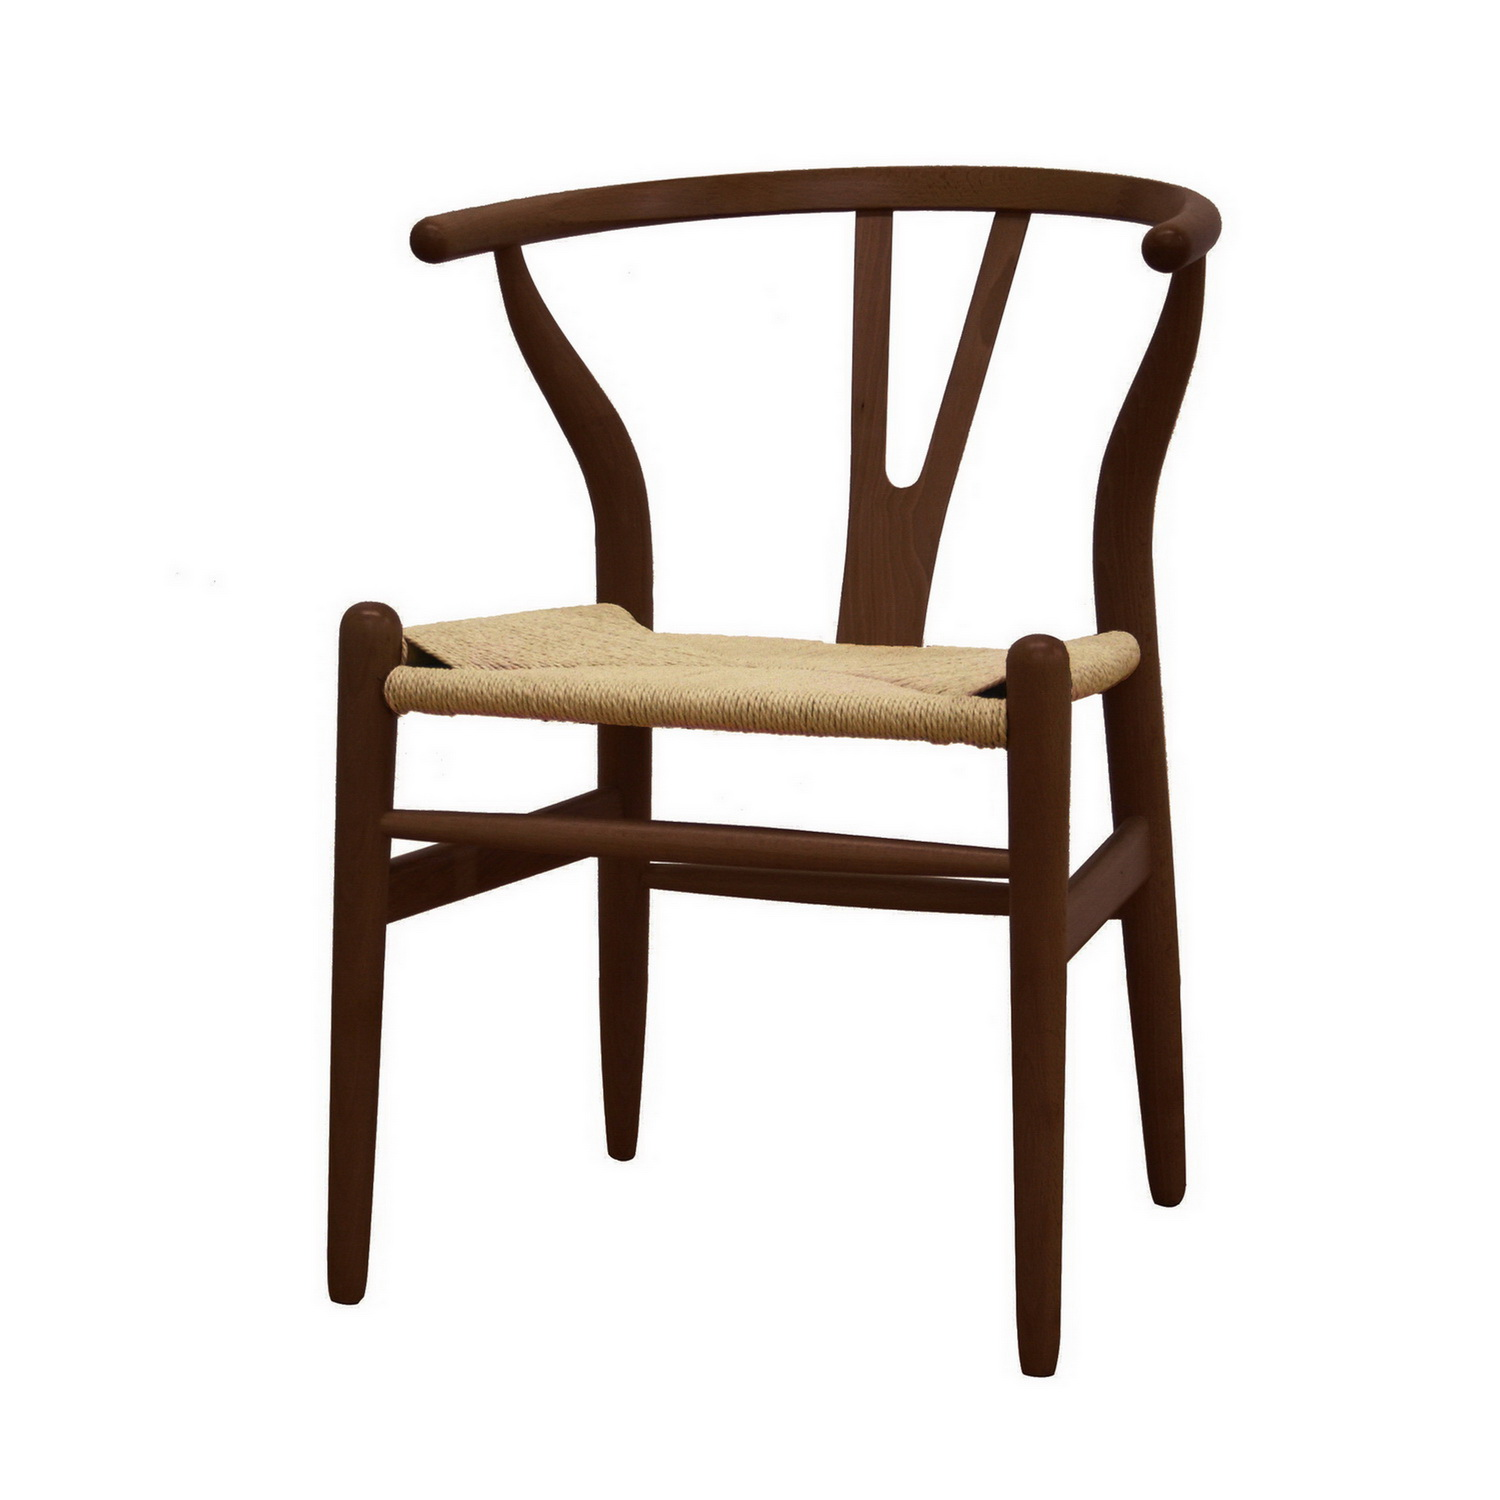 WOOD DINING CHAIRS WITH FREE SHIPPING Chair Pads Cushions